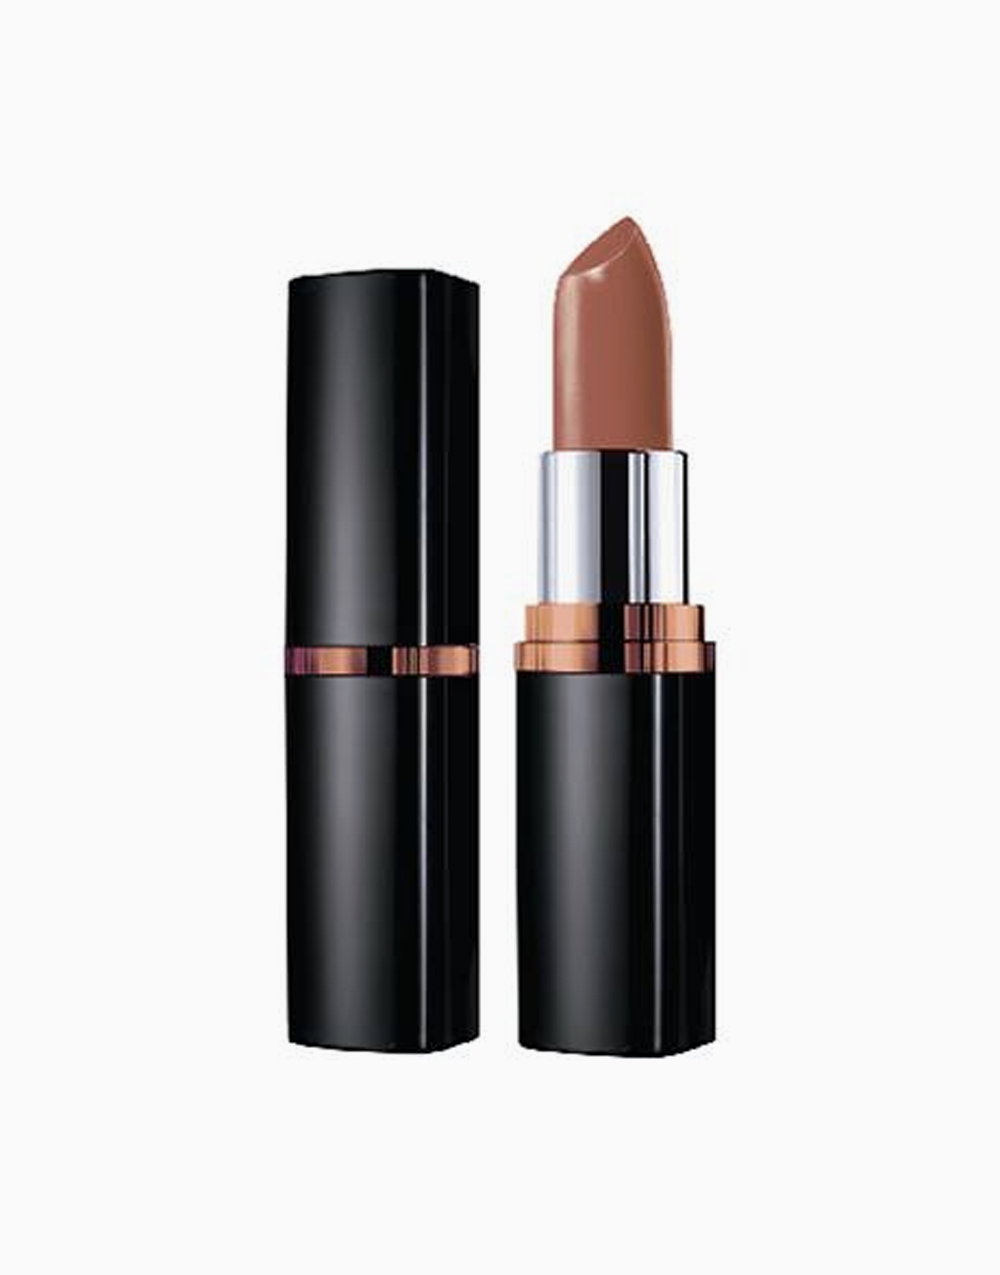 ColorSensational Vivid Creamy Matte Lipstick by Maybelline | Mysterious Mocha